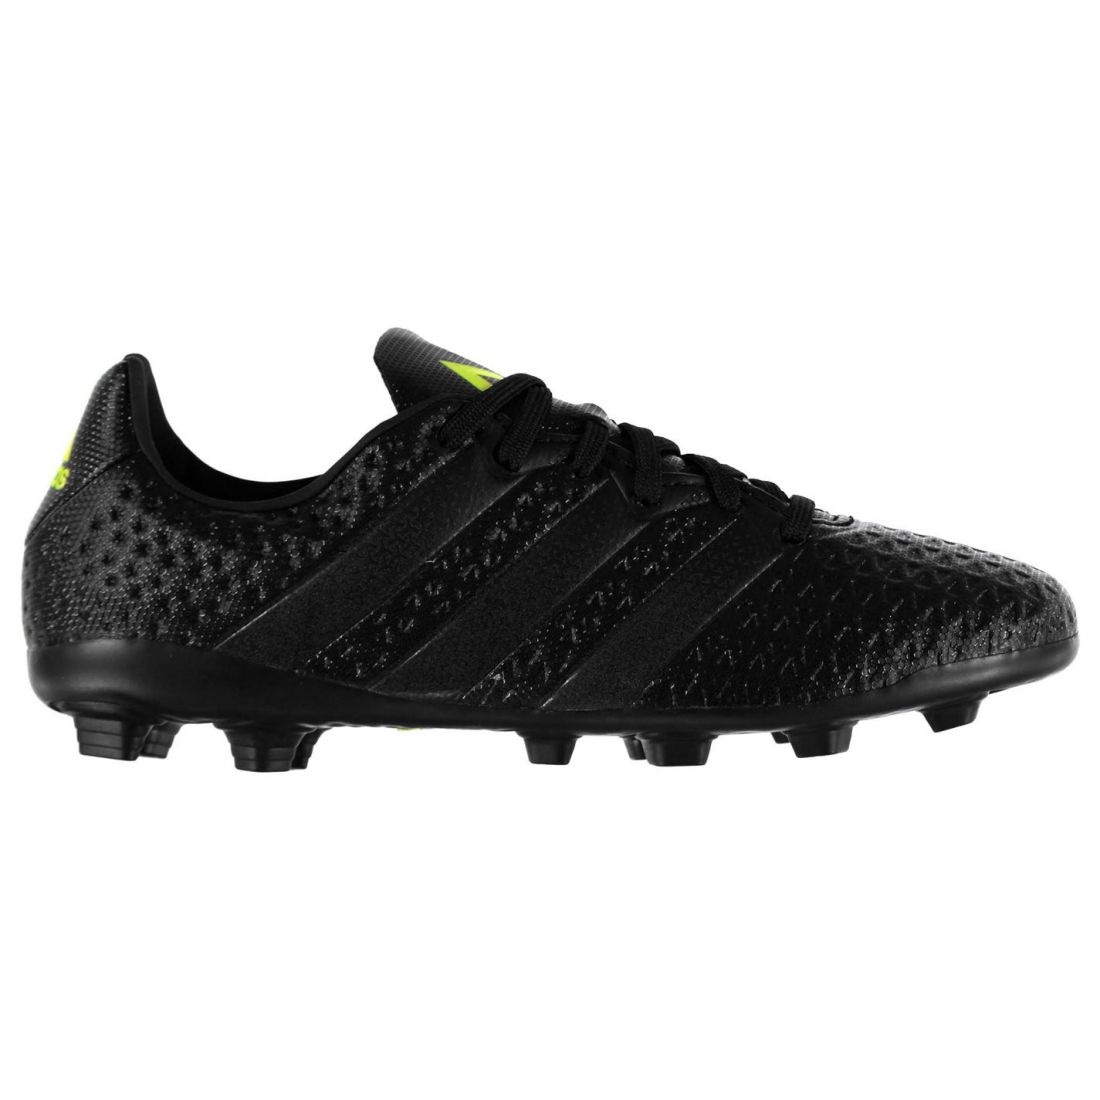 757be3a1c06a adidas Kids Ace 16.4 FG Football Boots Junior Lace Up Shoes Moulded Studs